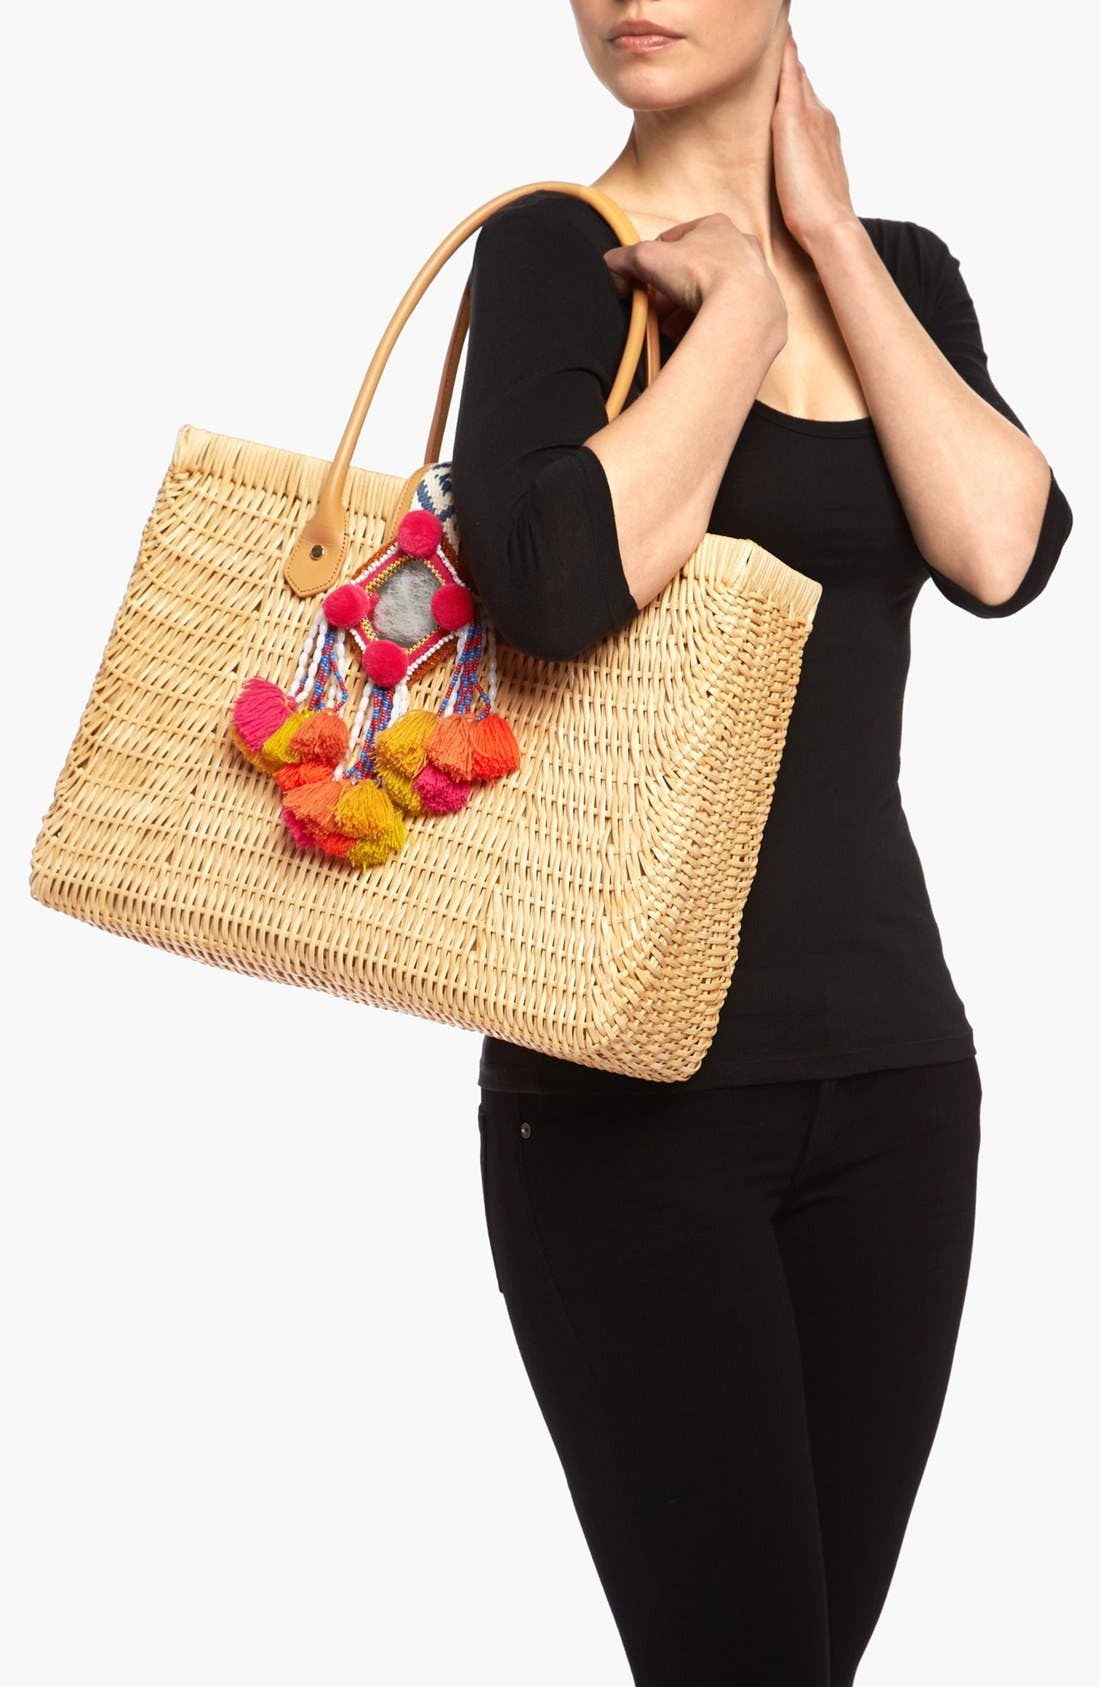 TORY BURCH, Rattan Tote, Alternate thumbnail 4, color, 282